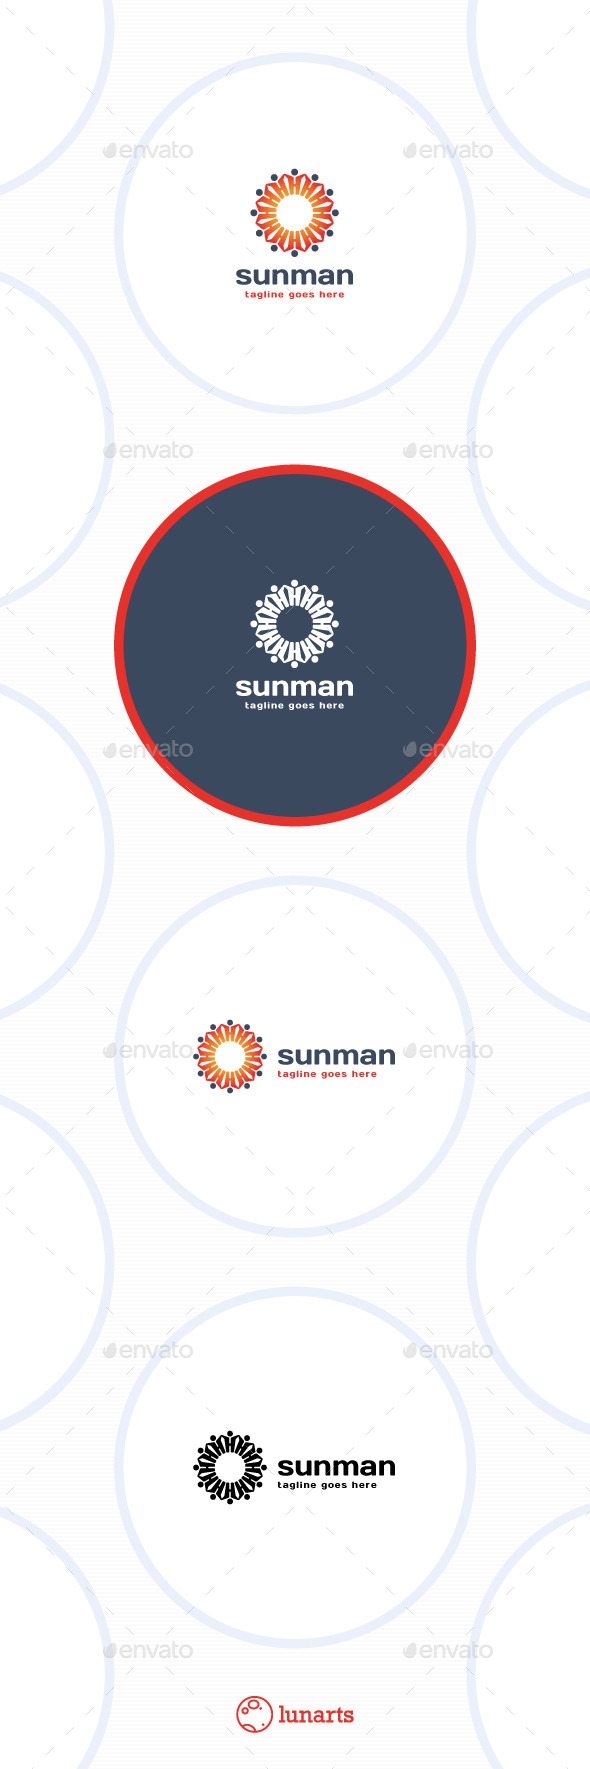 Sun Man Logo - Flower - Nature Logo Templates